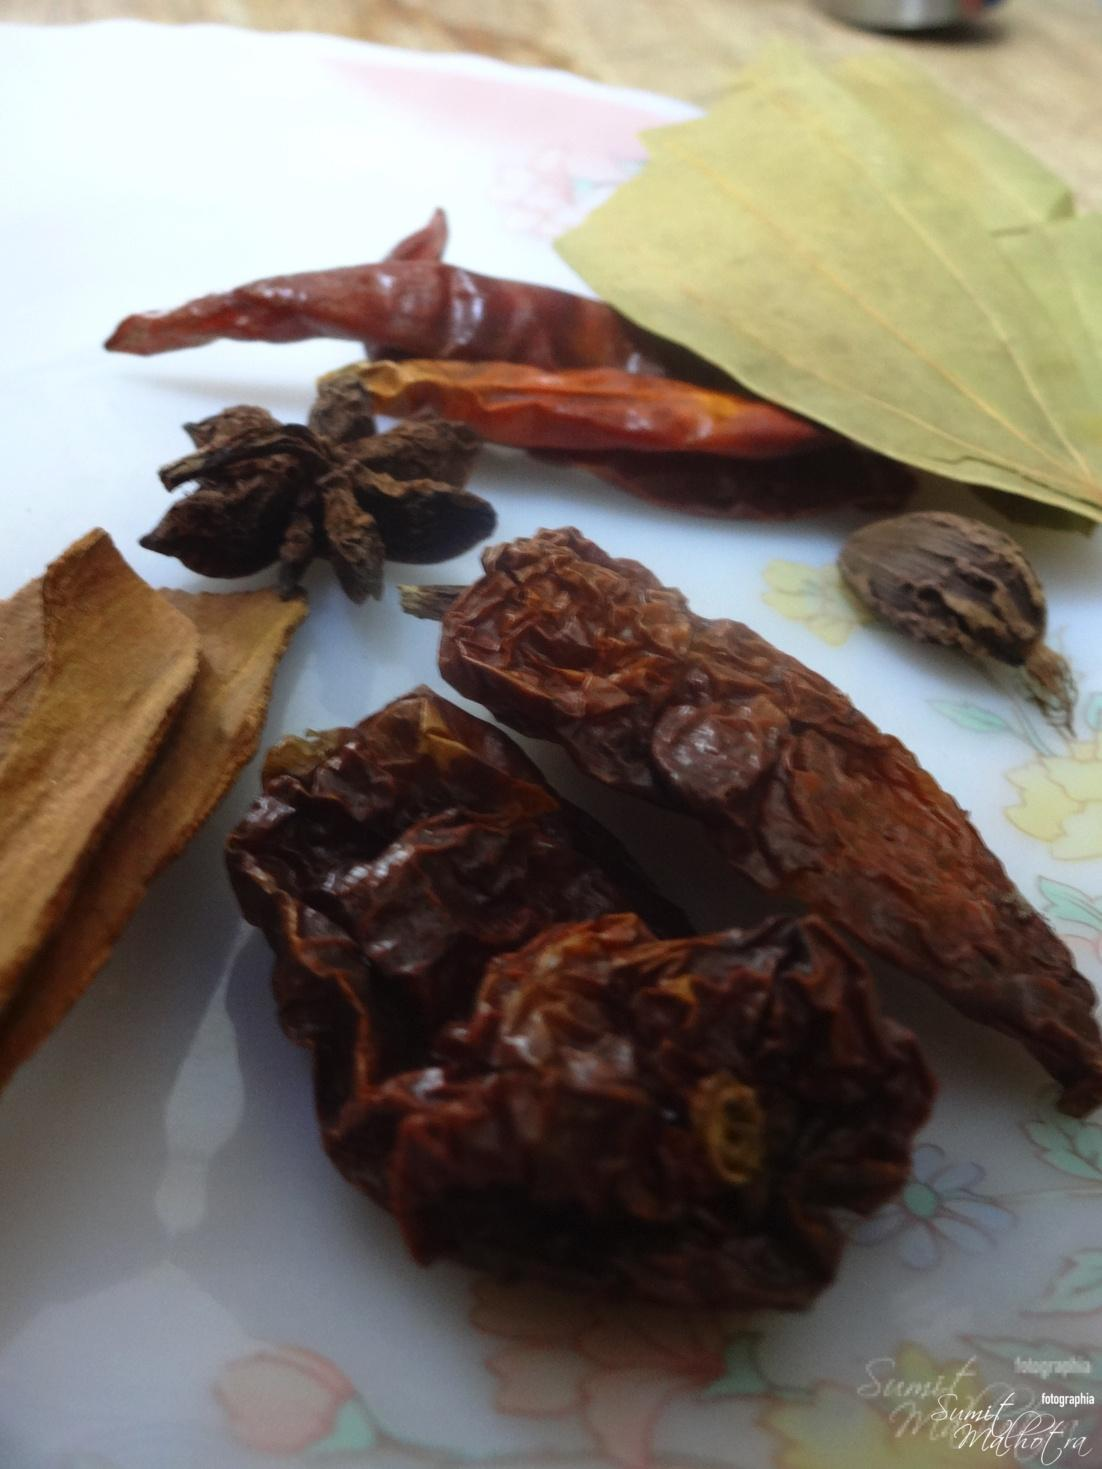 Whole Spices with Ghost Chilli or Bhut Jolokia